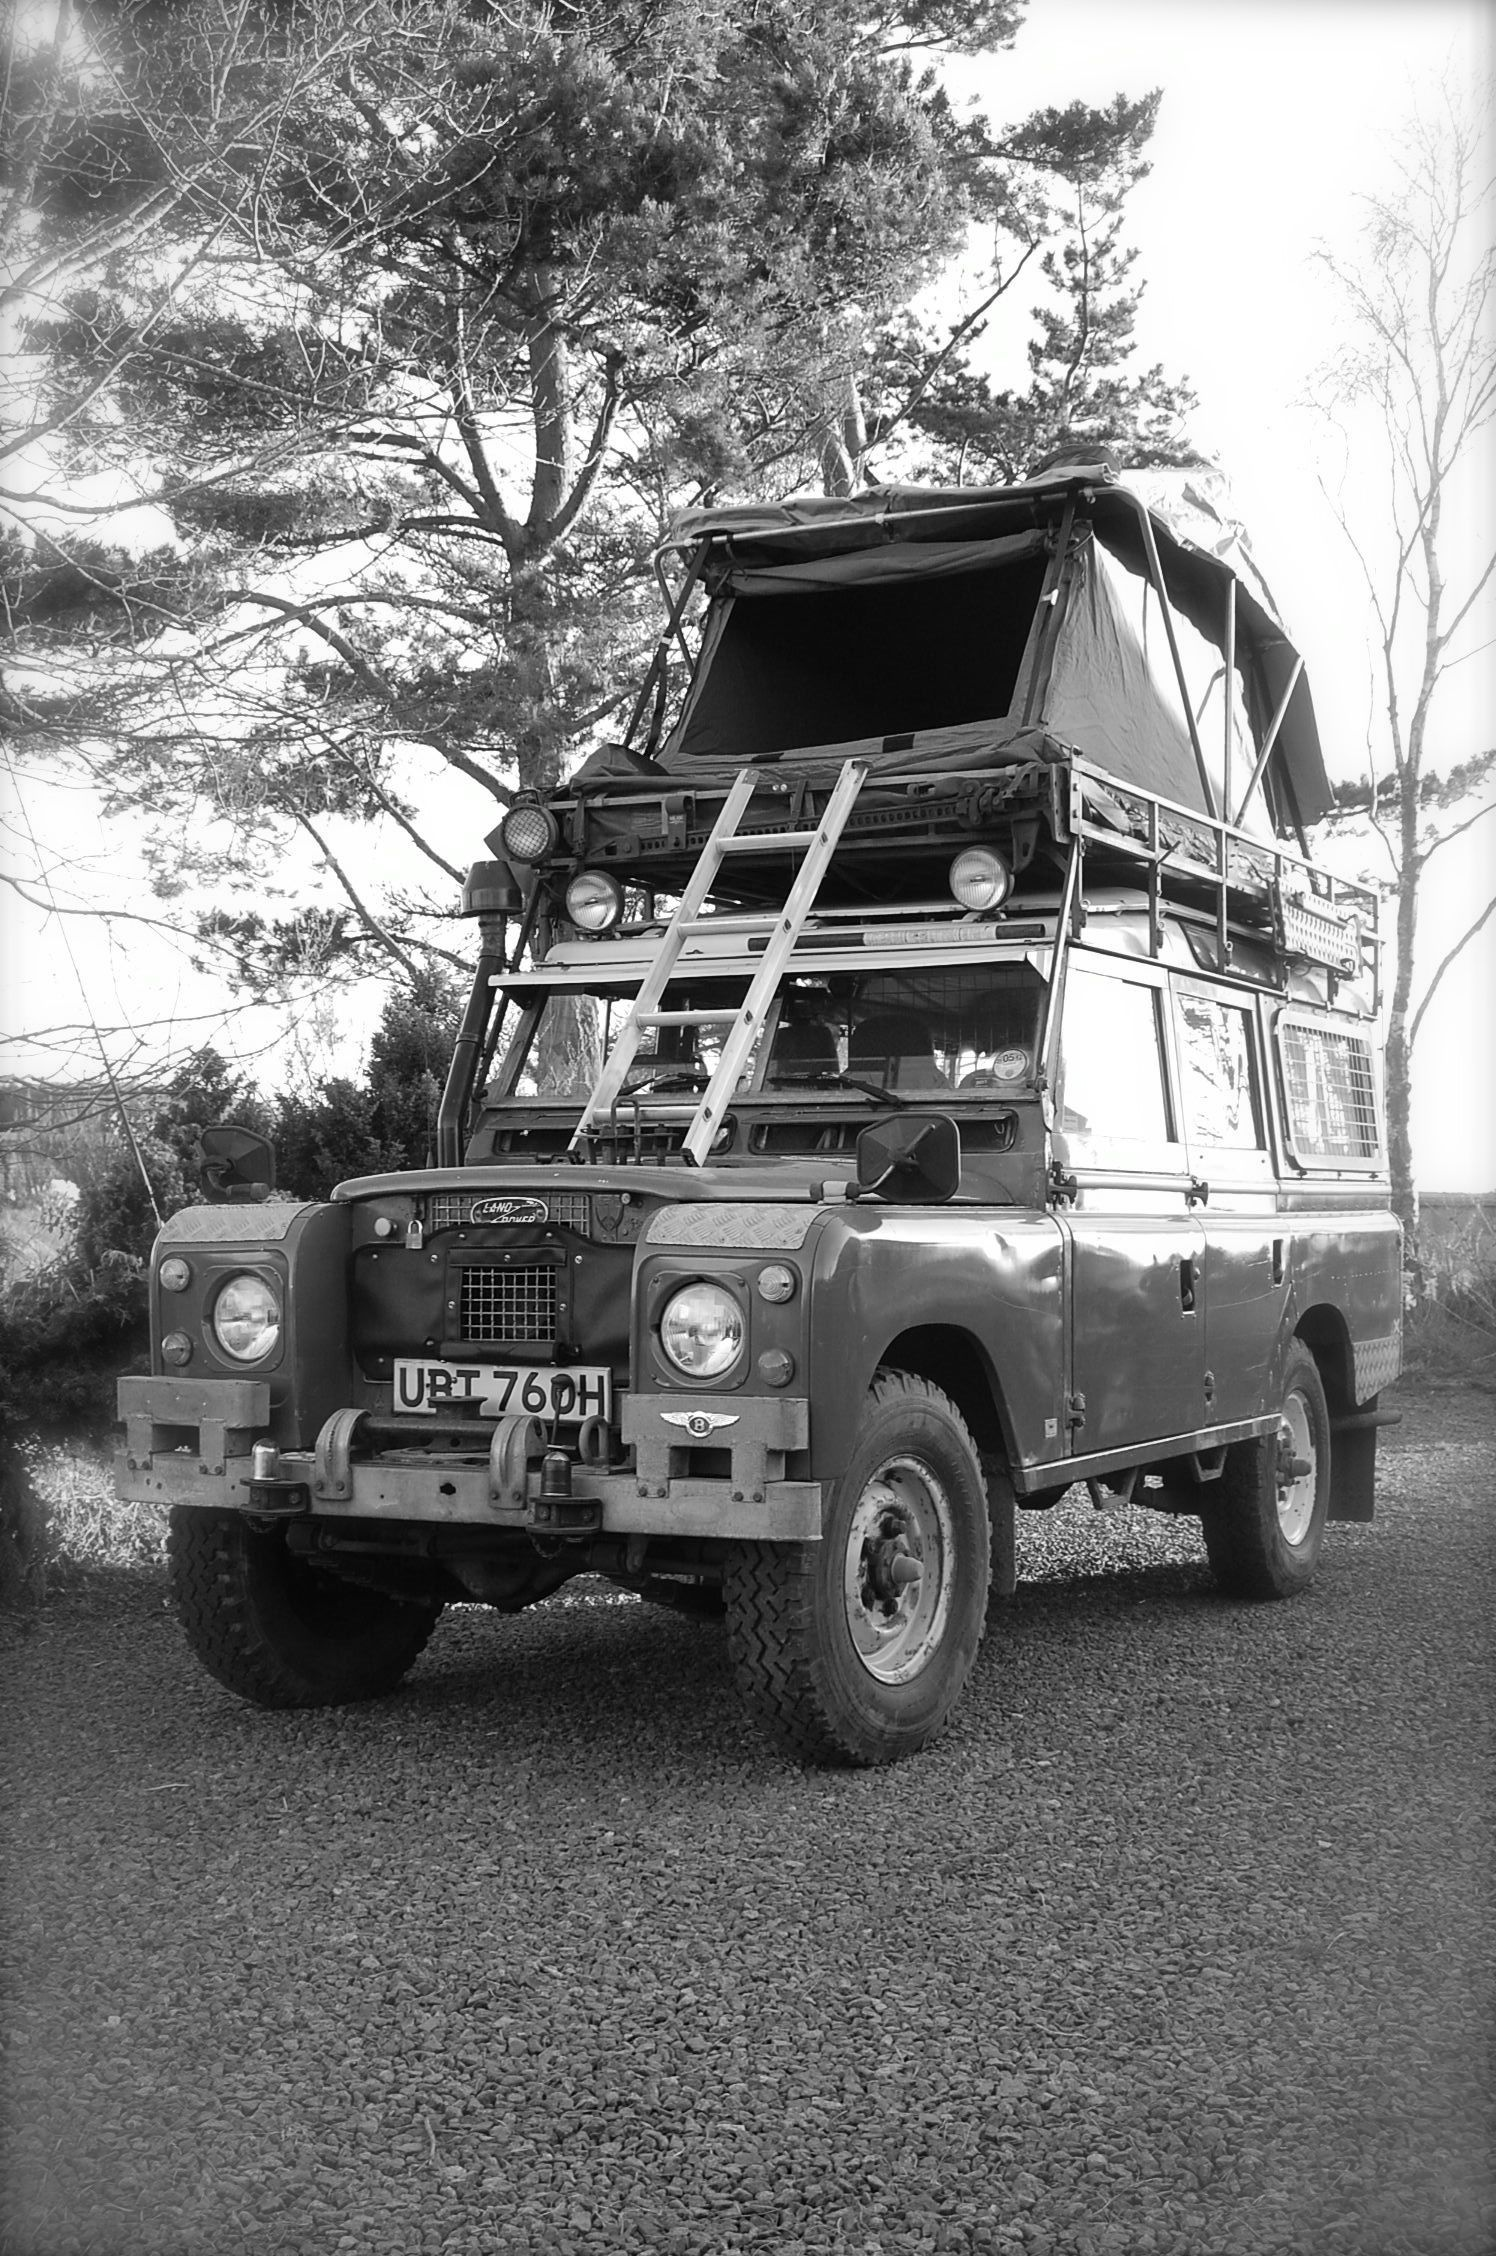 Pin By Heaven Baker On Our Family Love Landys Land Rover Series Land Rover Off Road Land Rover